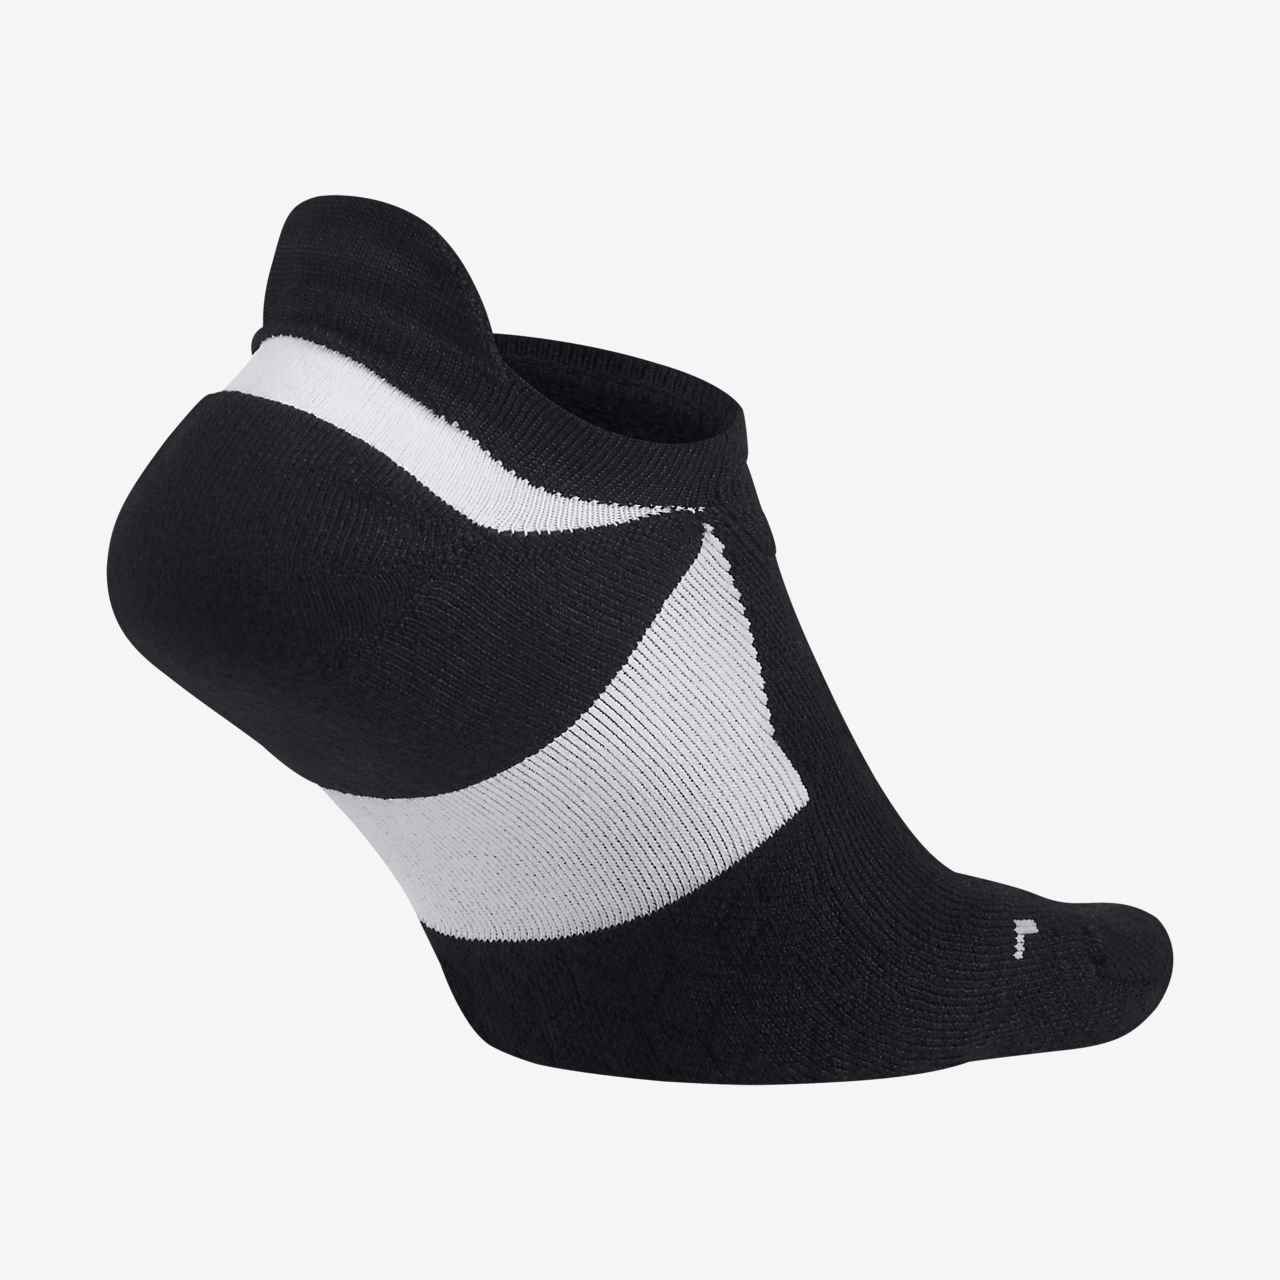 240111a6cc Nike Elite Cushioned No-Show Running Socks. Nike.com AU